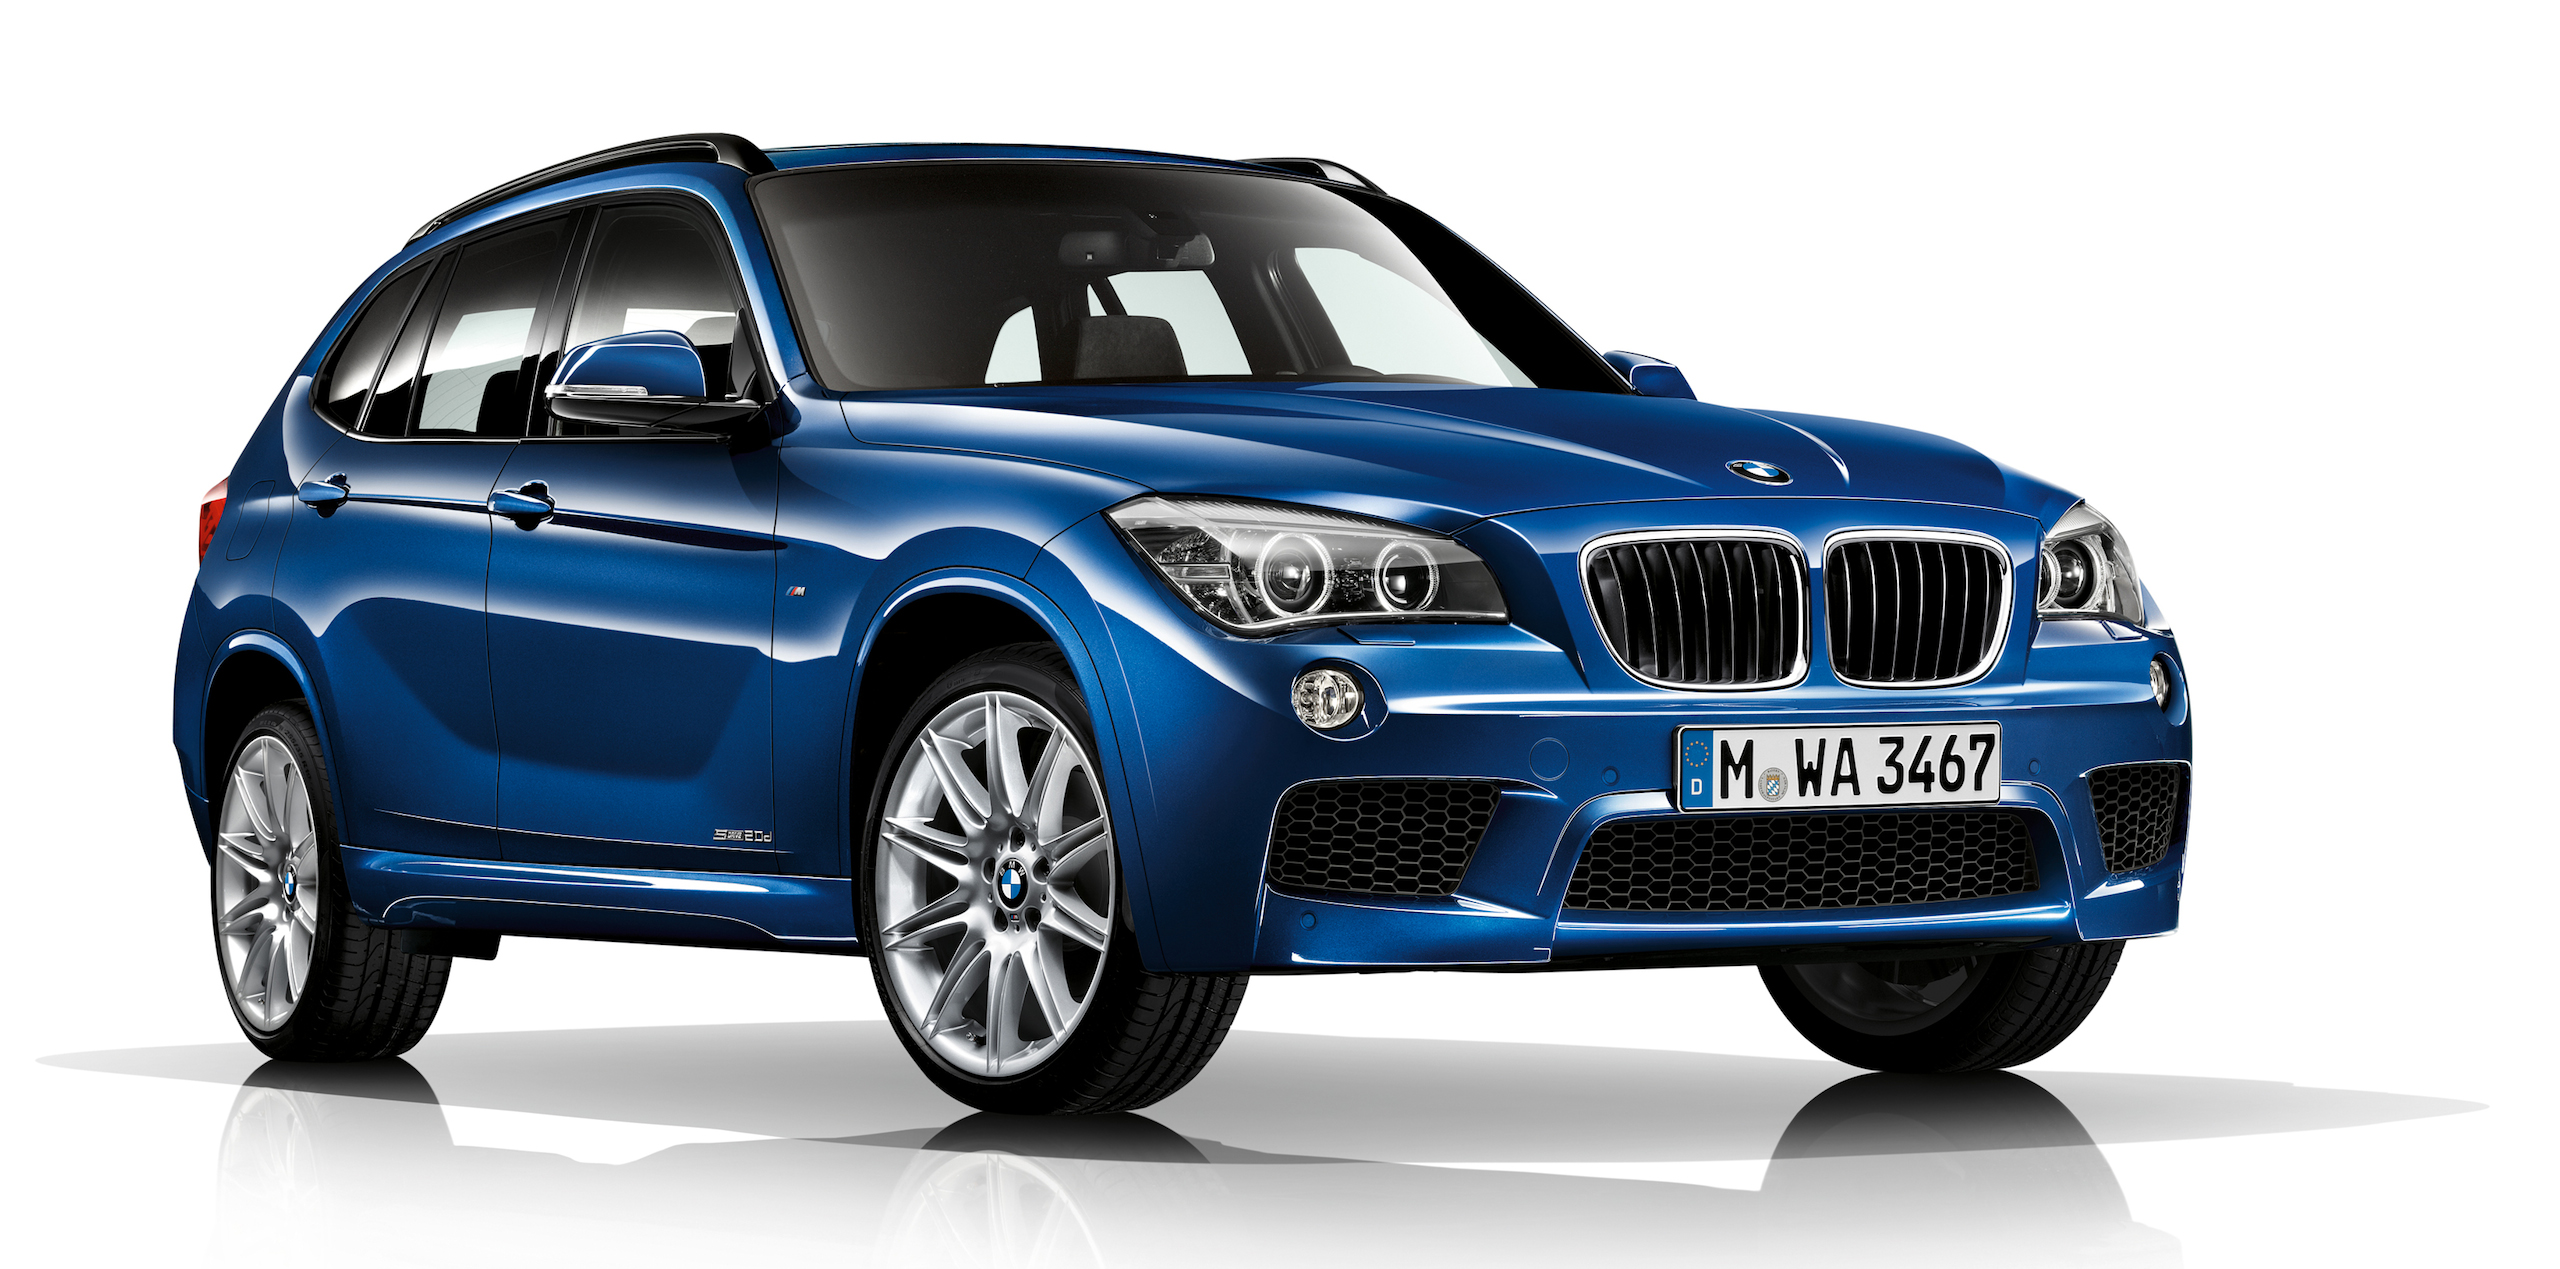 bmw x1 compact suv gets a minor refresh for 2014 image 217493. Black Bedroom Furniture Sets. Home Design Ideas